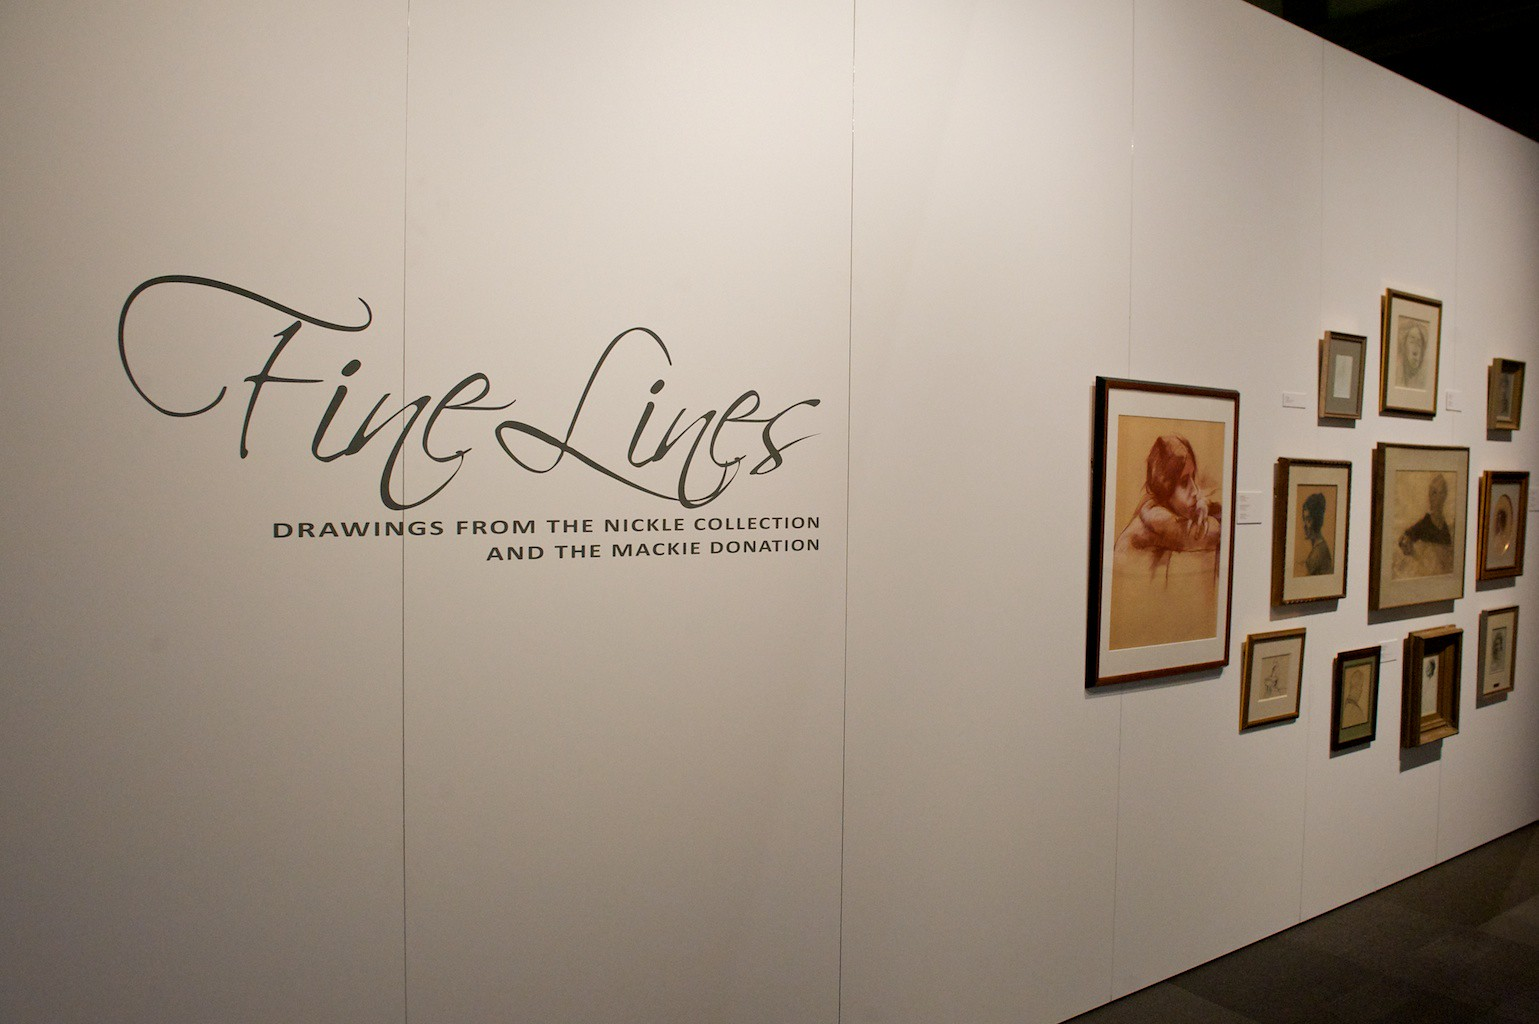 FINE LINES: DRAWINGS FROM THE NICKLE COLLECTION AND THE MACKIE DONATION, April 14, 2014 - May 24, 2014 (installation view). Photo:  Dave Brown, LCR Photo Services.